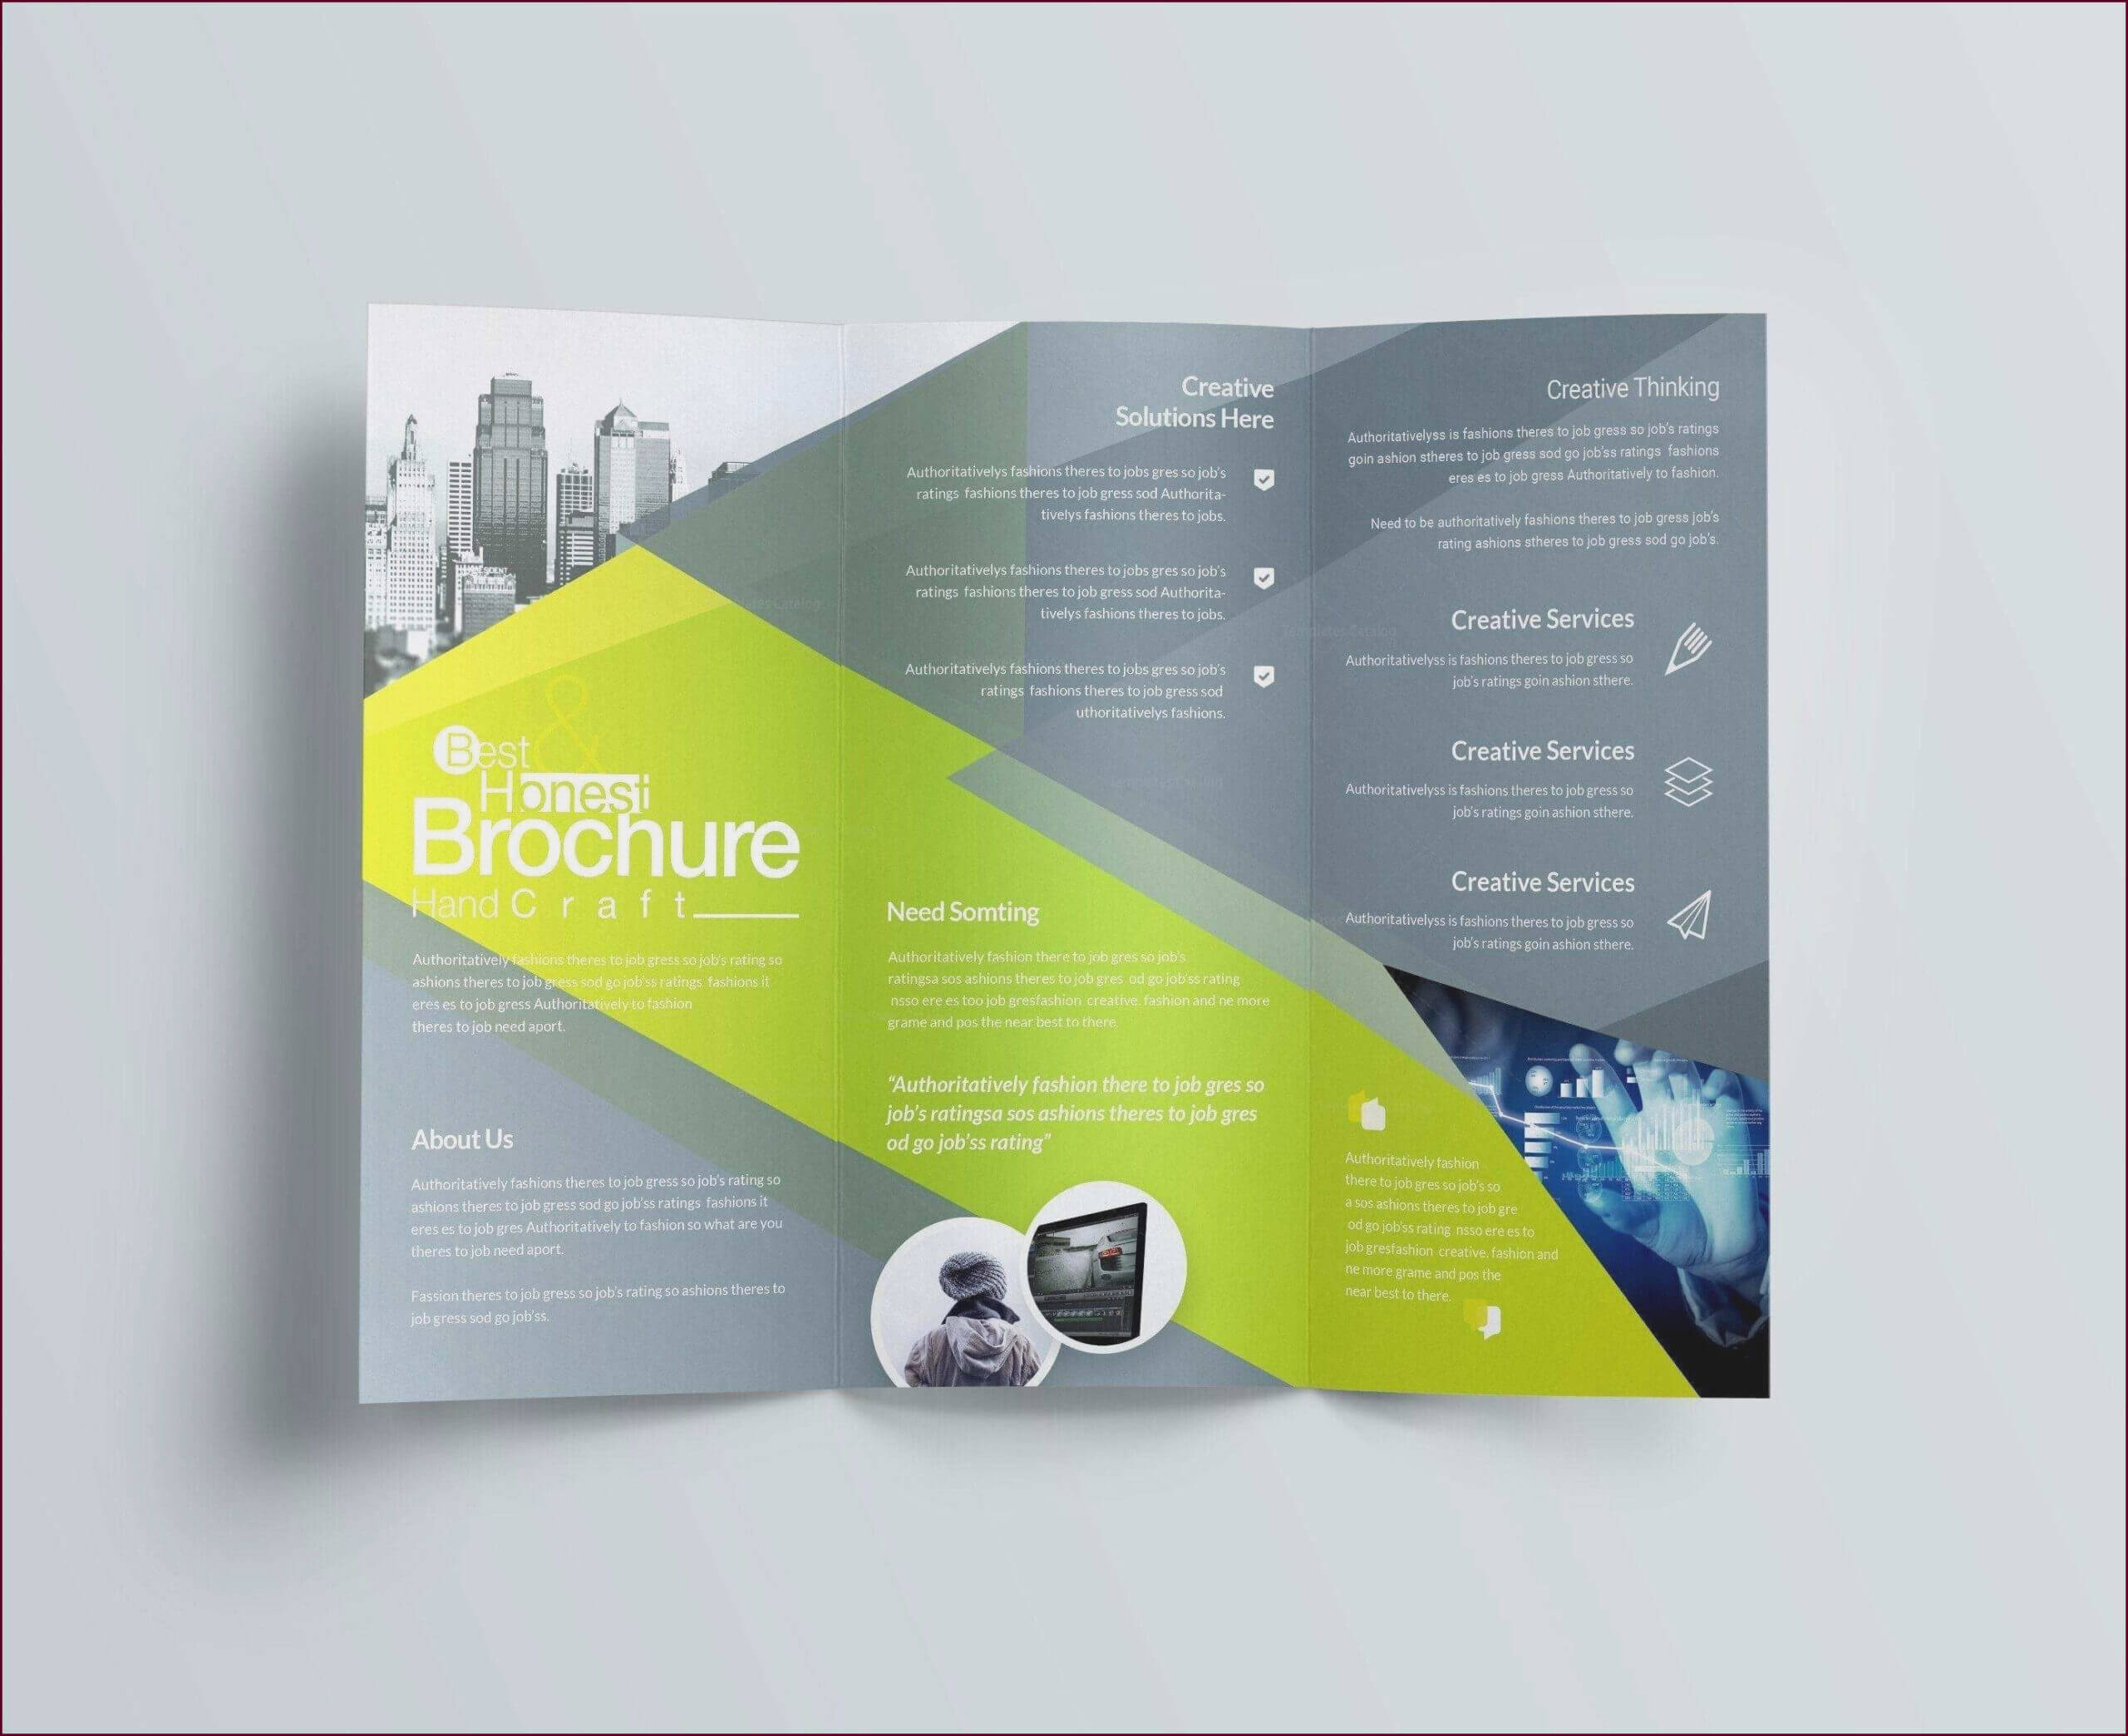 008 Brochure Templates Free Download For Word Template Ideas Regarding Word 2013 Brochure Template